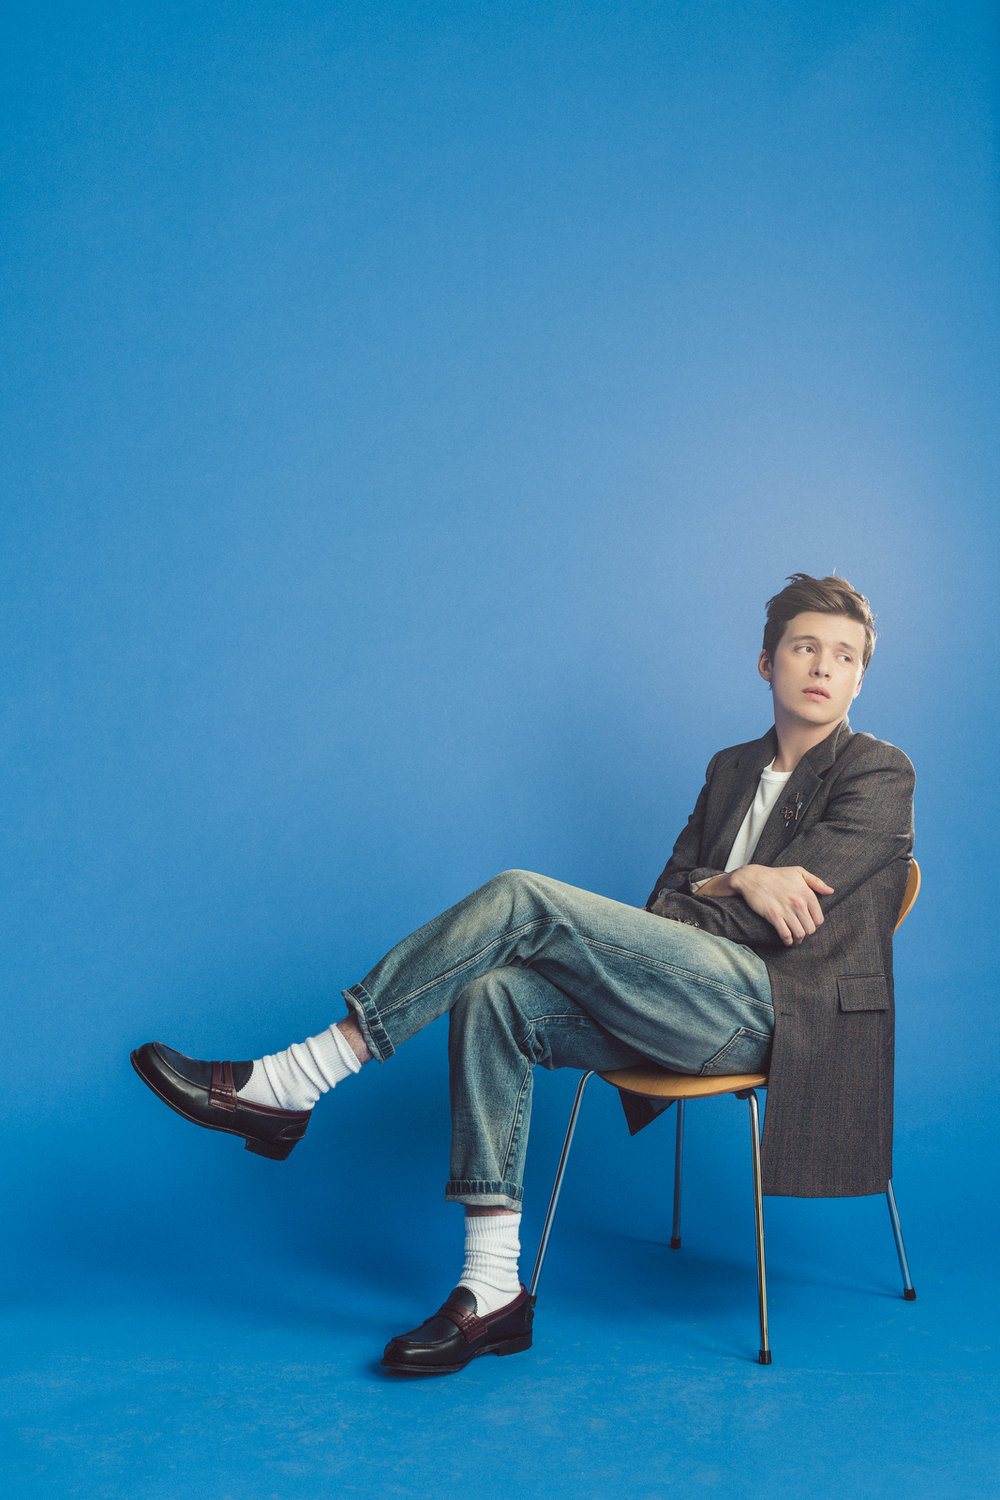 gq_nickrobinson06.jpg